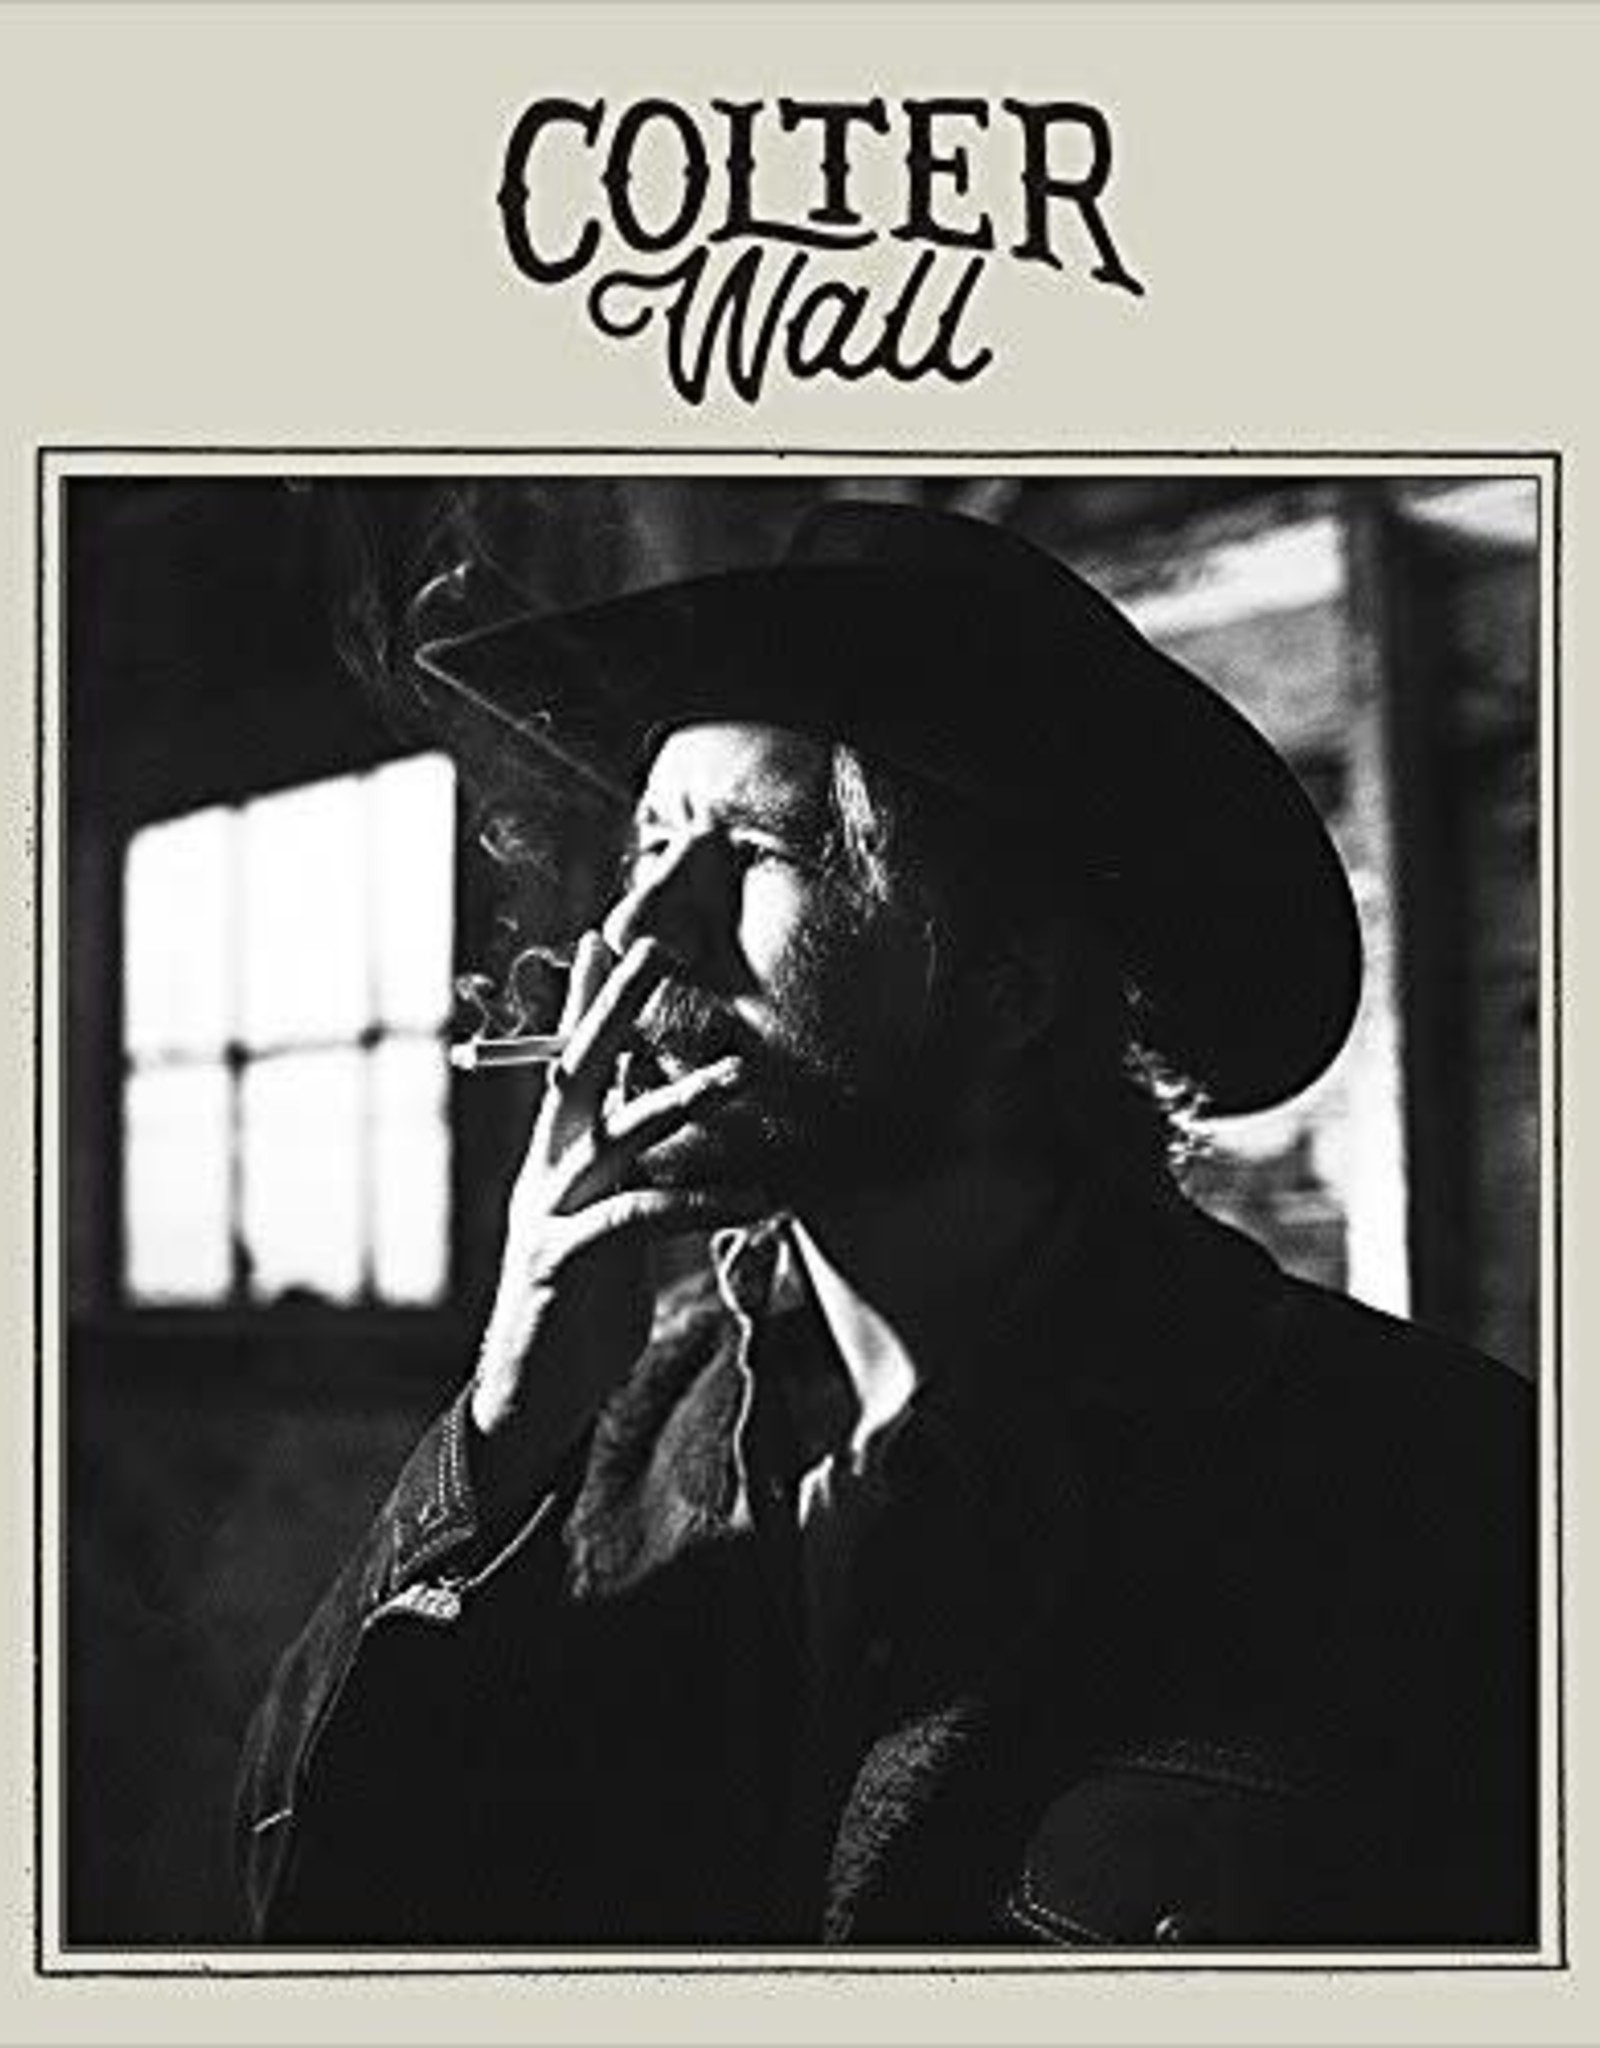 Colter Wall - S/t